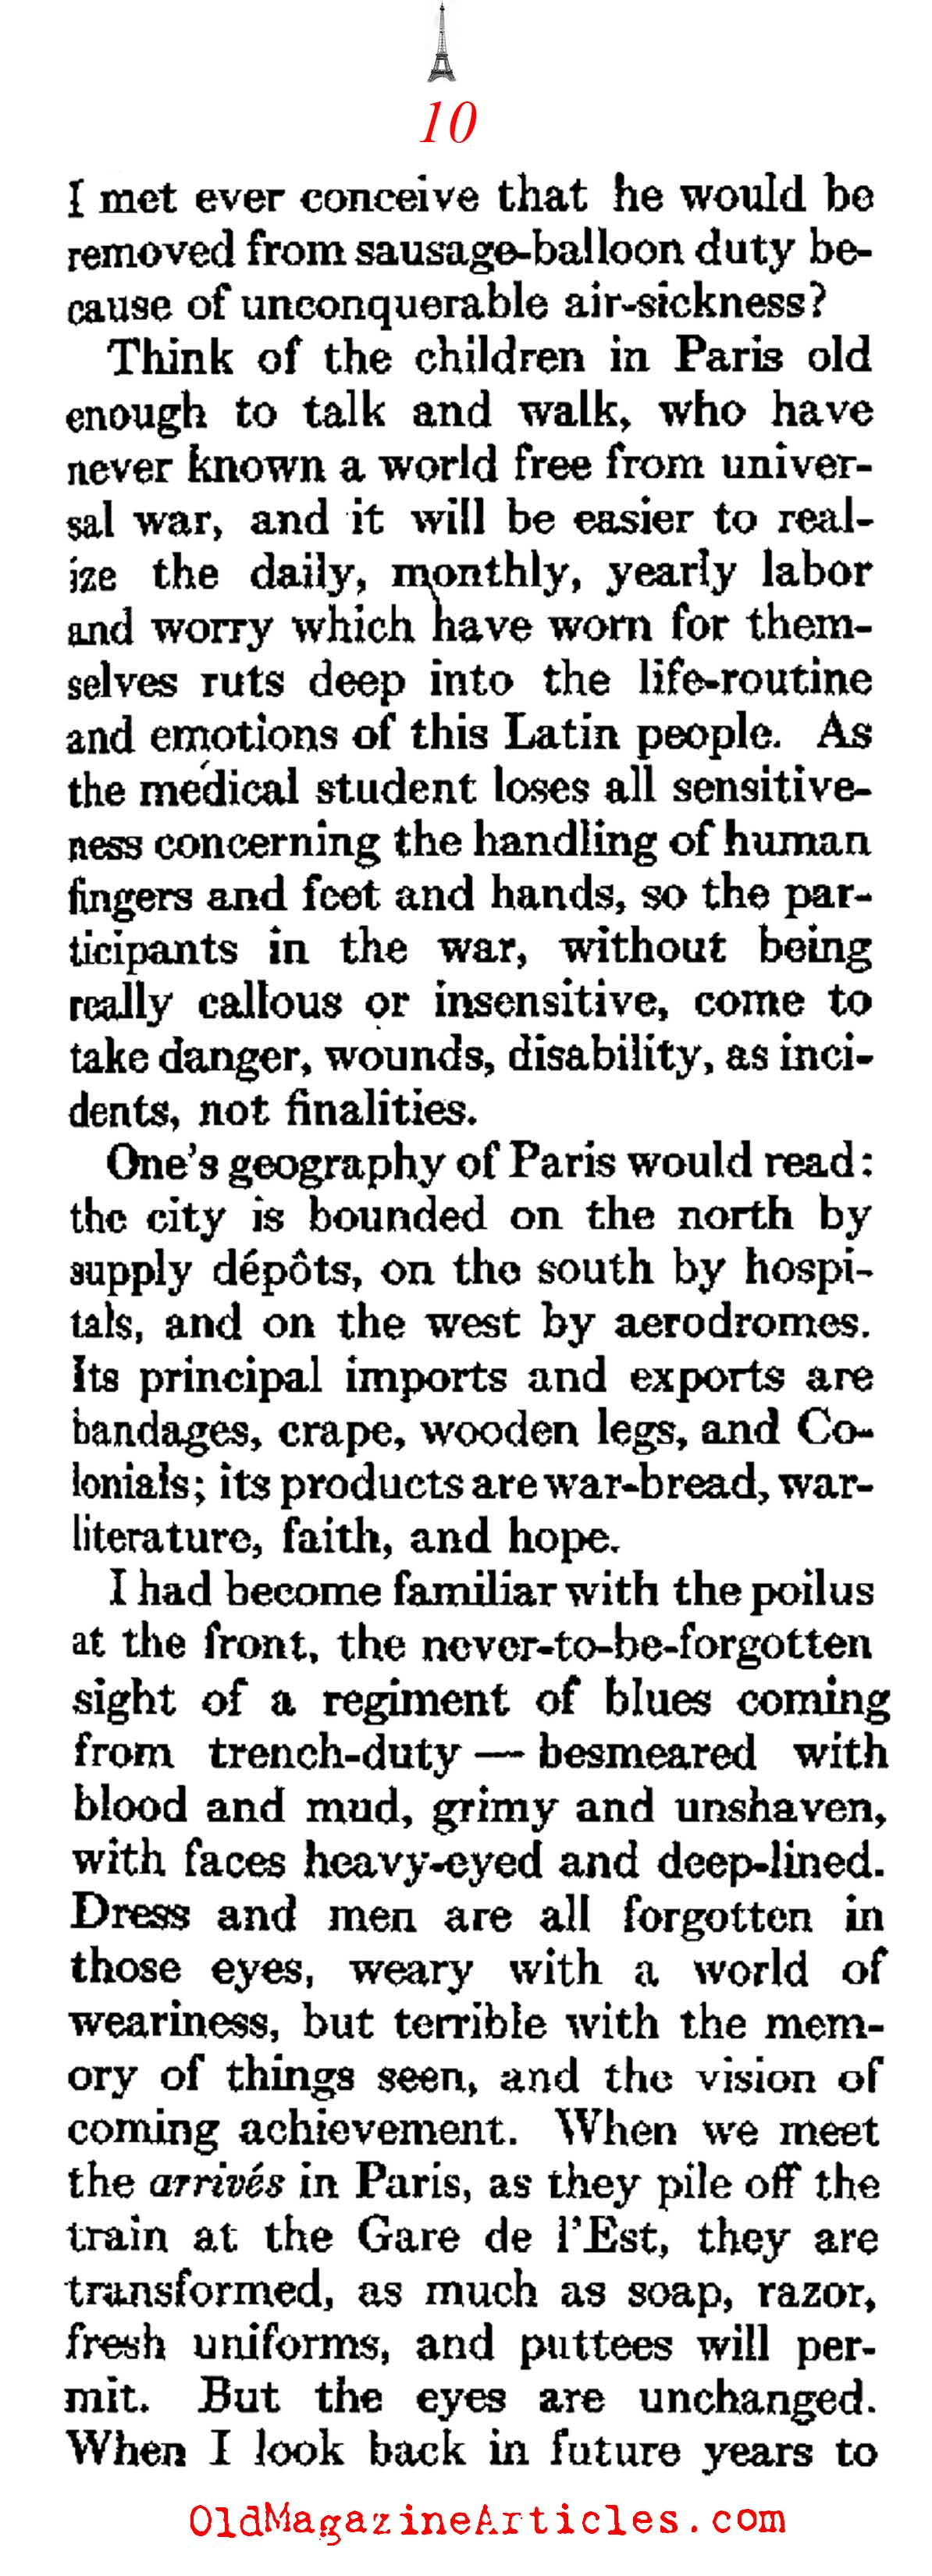 The Atmosphere of W.W. I Paris   (Atlantic Monthly, 1918)